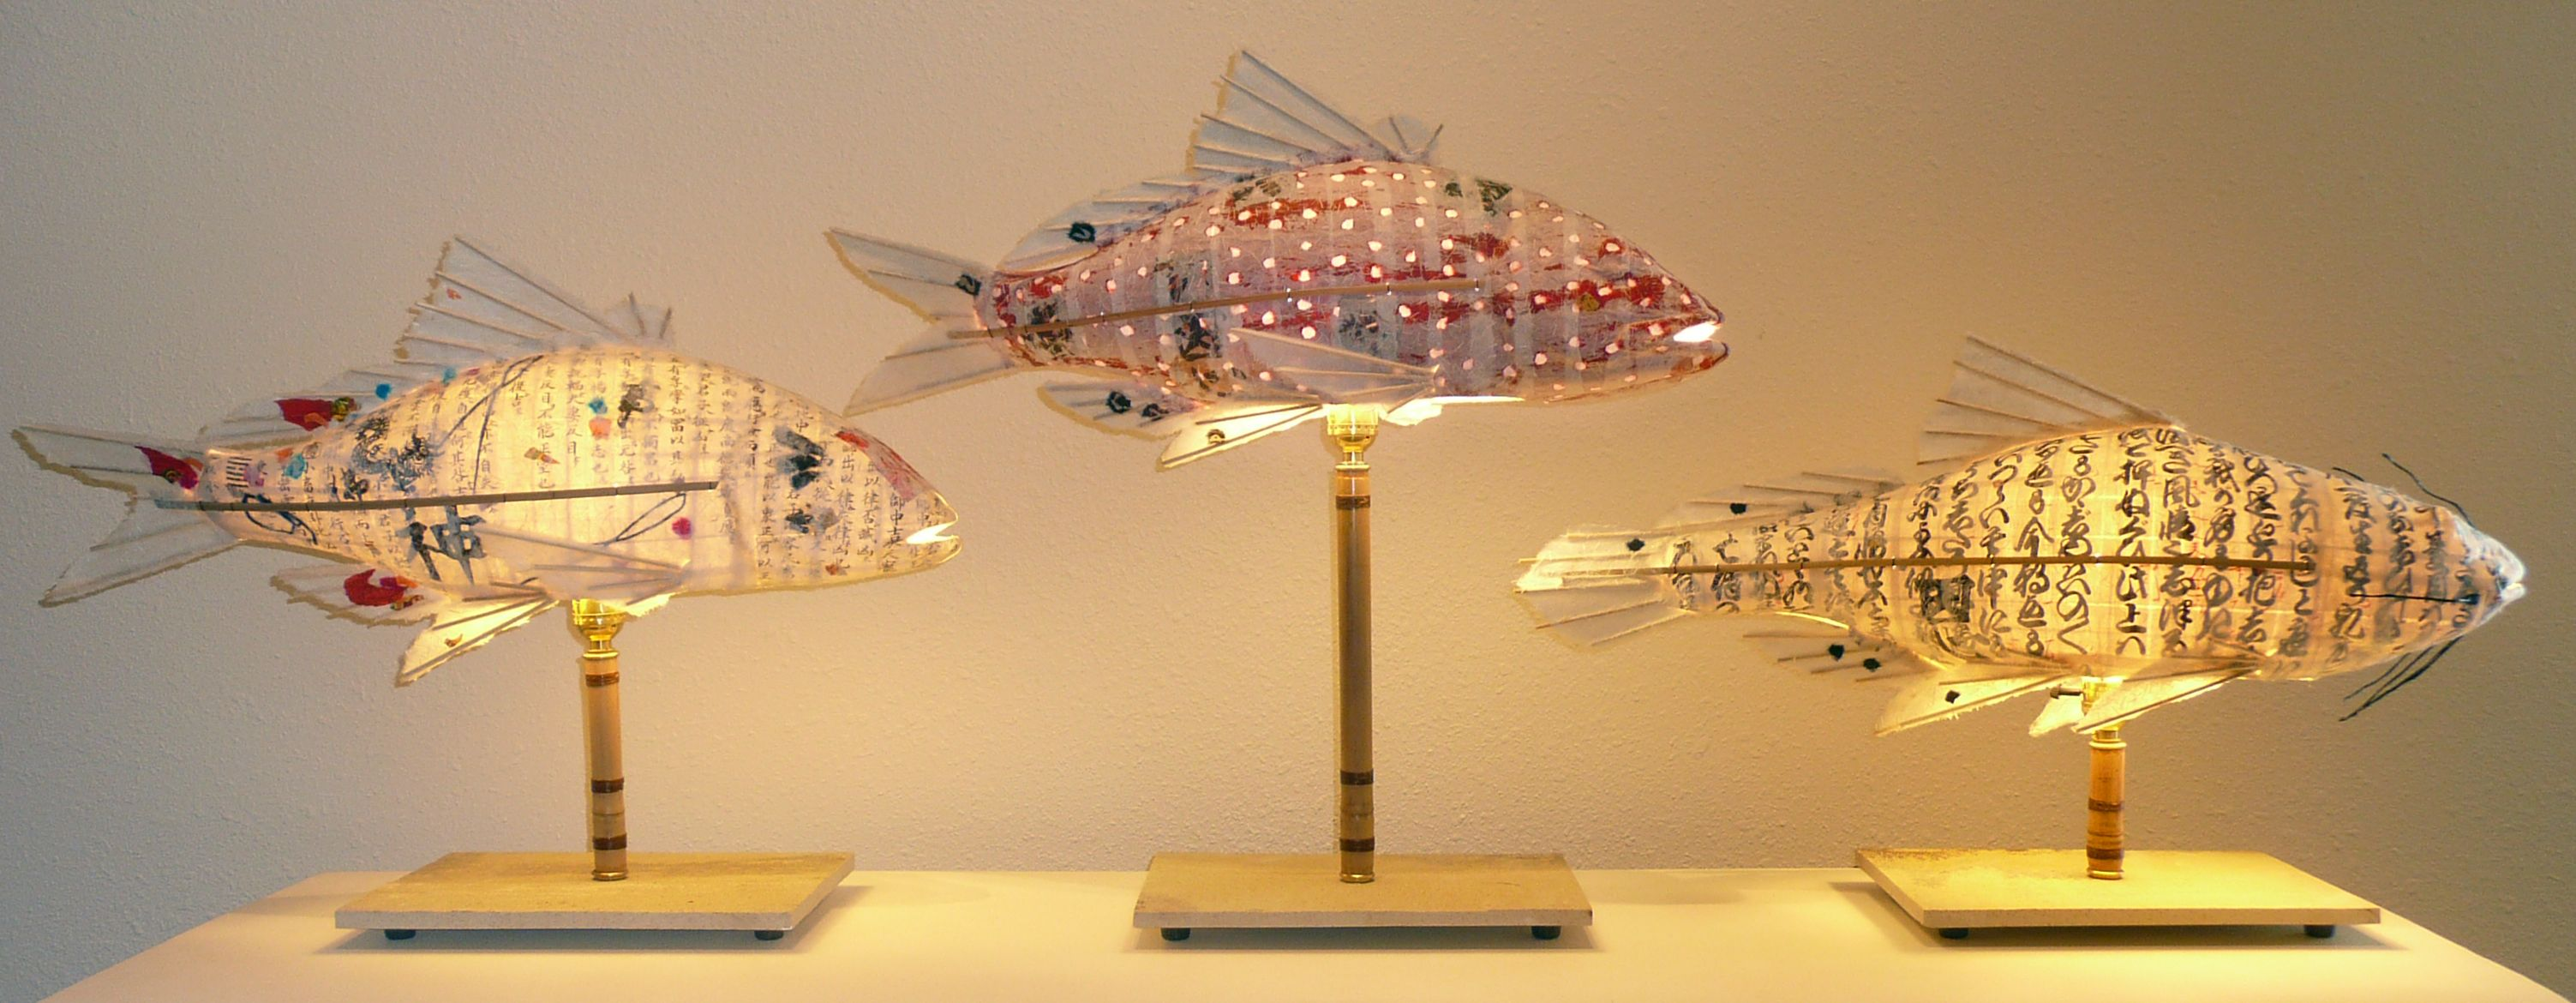 Customized Trio Of Fish Lights Made By Artxchange Artist Elaine